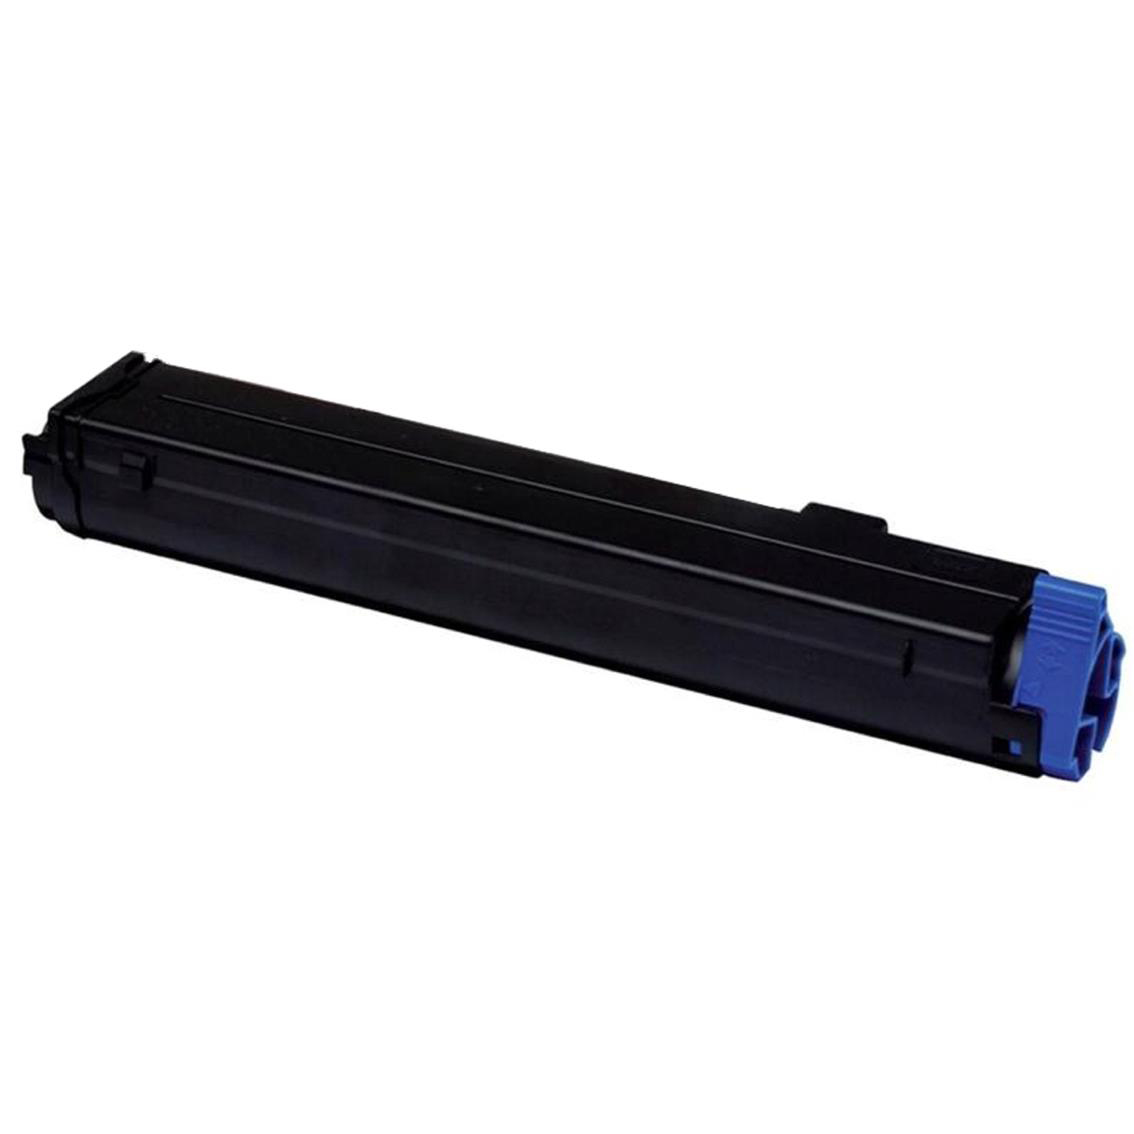 Fuser Units OKI Laser Toner Cartridge High Yield Page Life 7000pp Black Ref 45807106